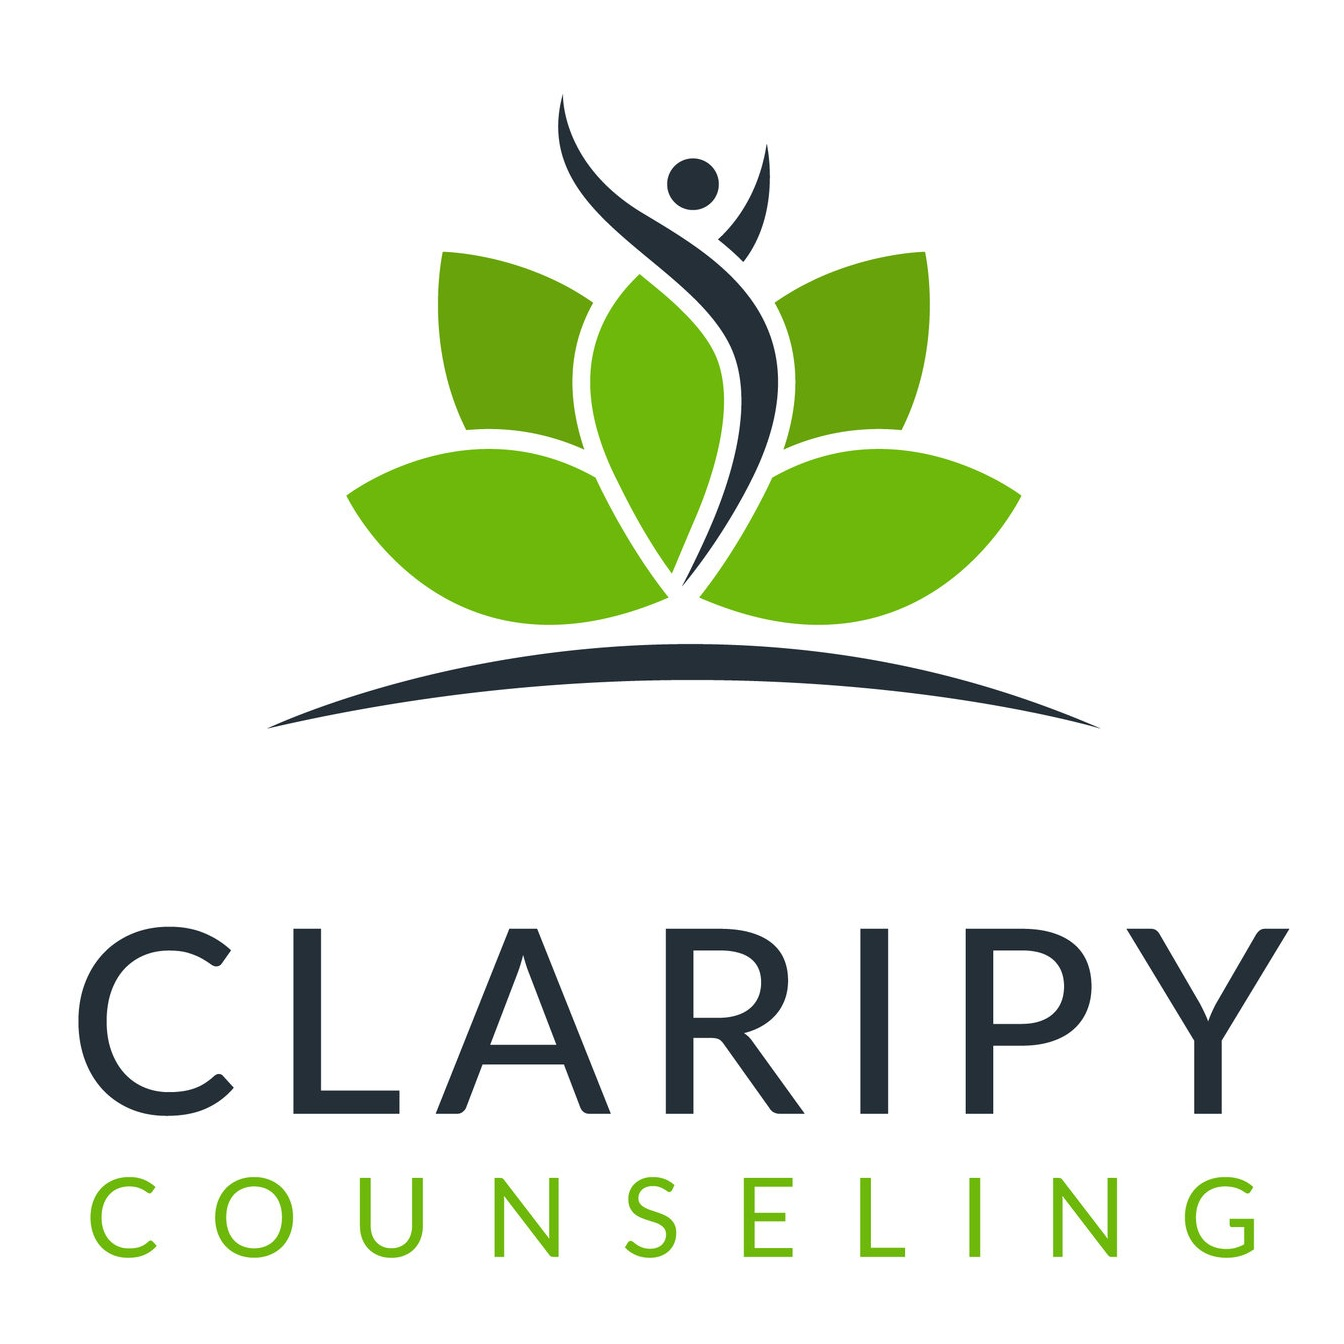 Claripy Counseling